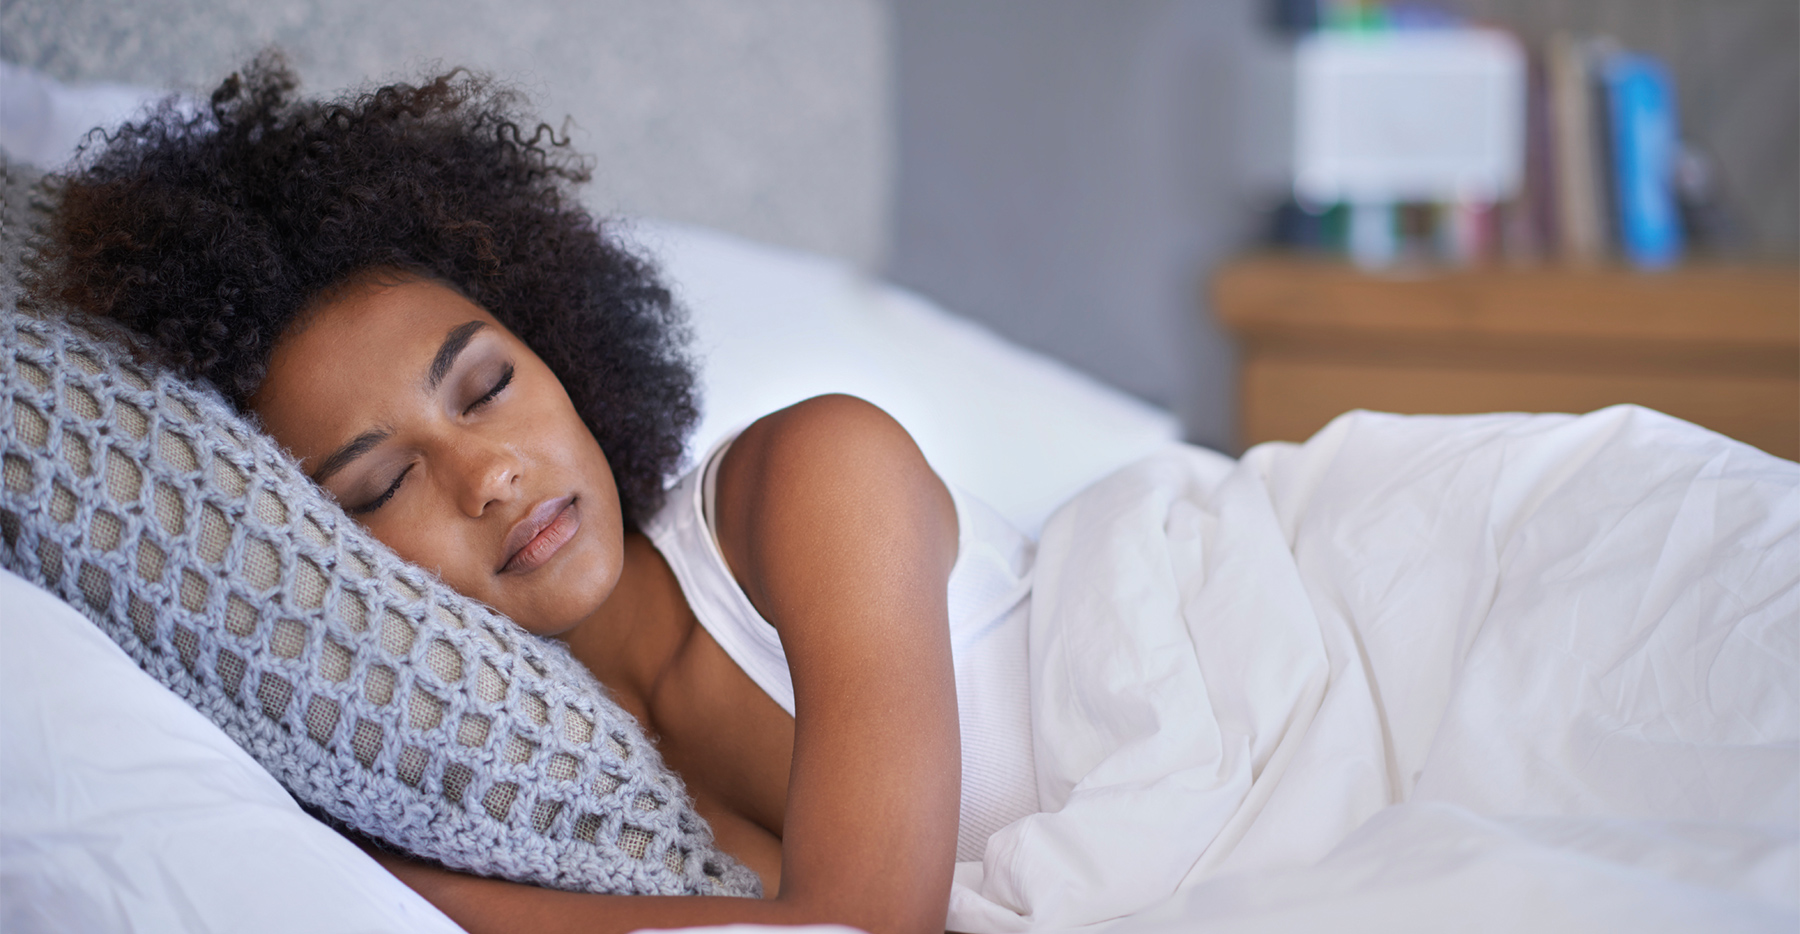 Man Shaped Pillow This Is How Often You Should Replace Your Pillow Greatist